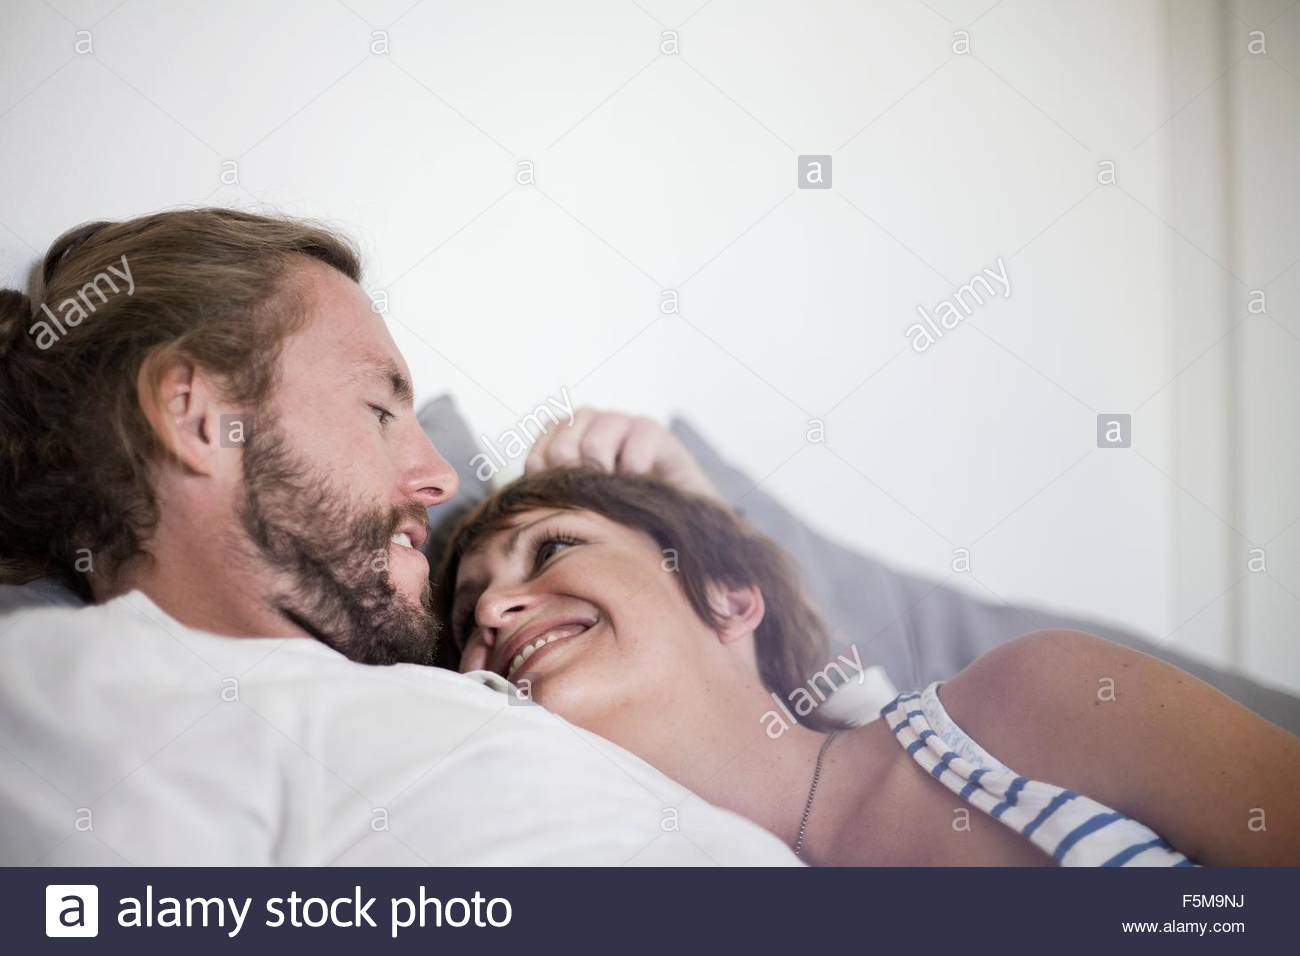 Couple in loving embrace in bed - Stock Image